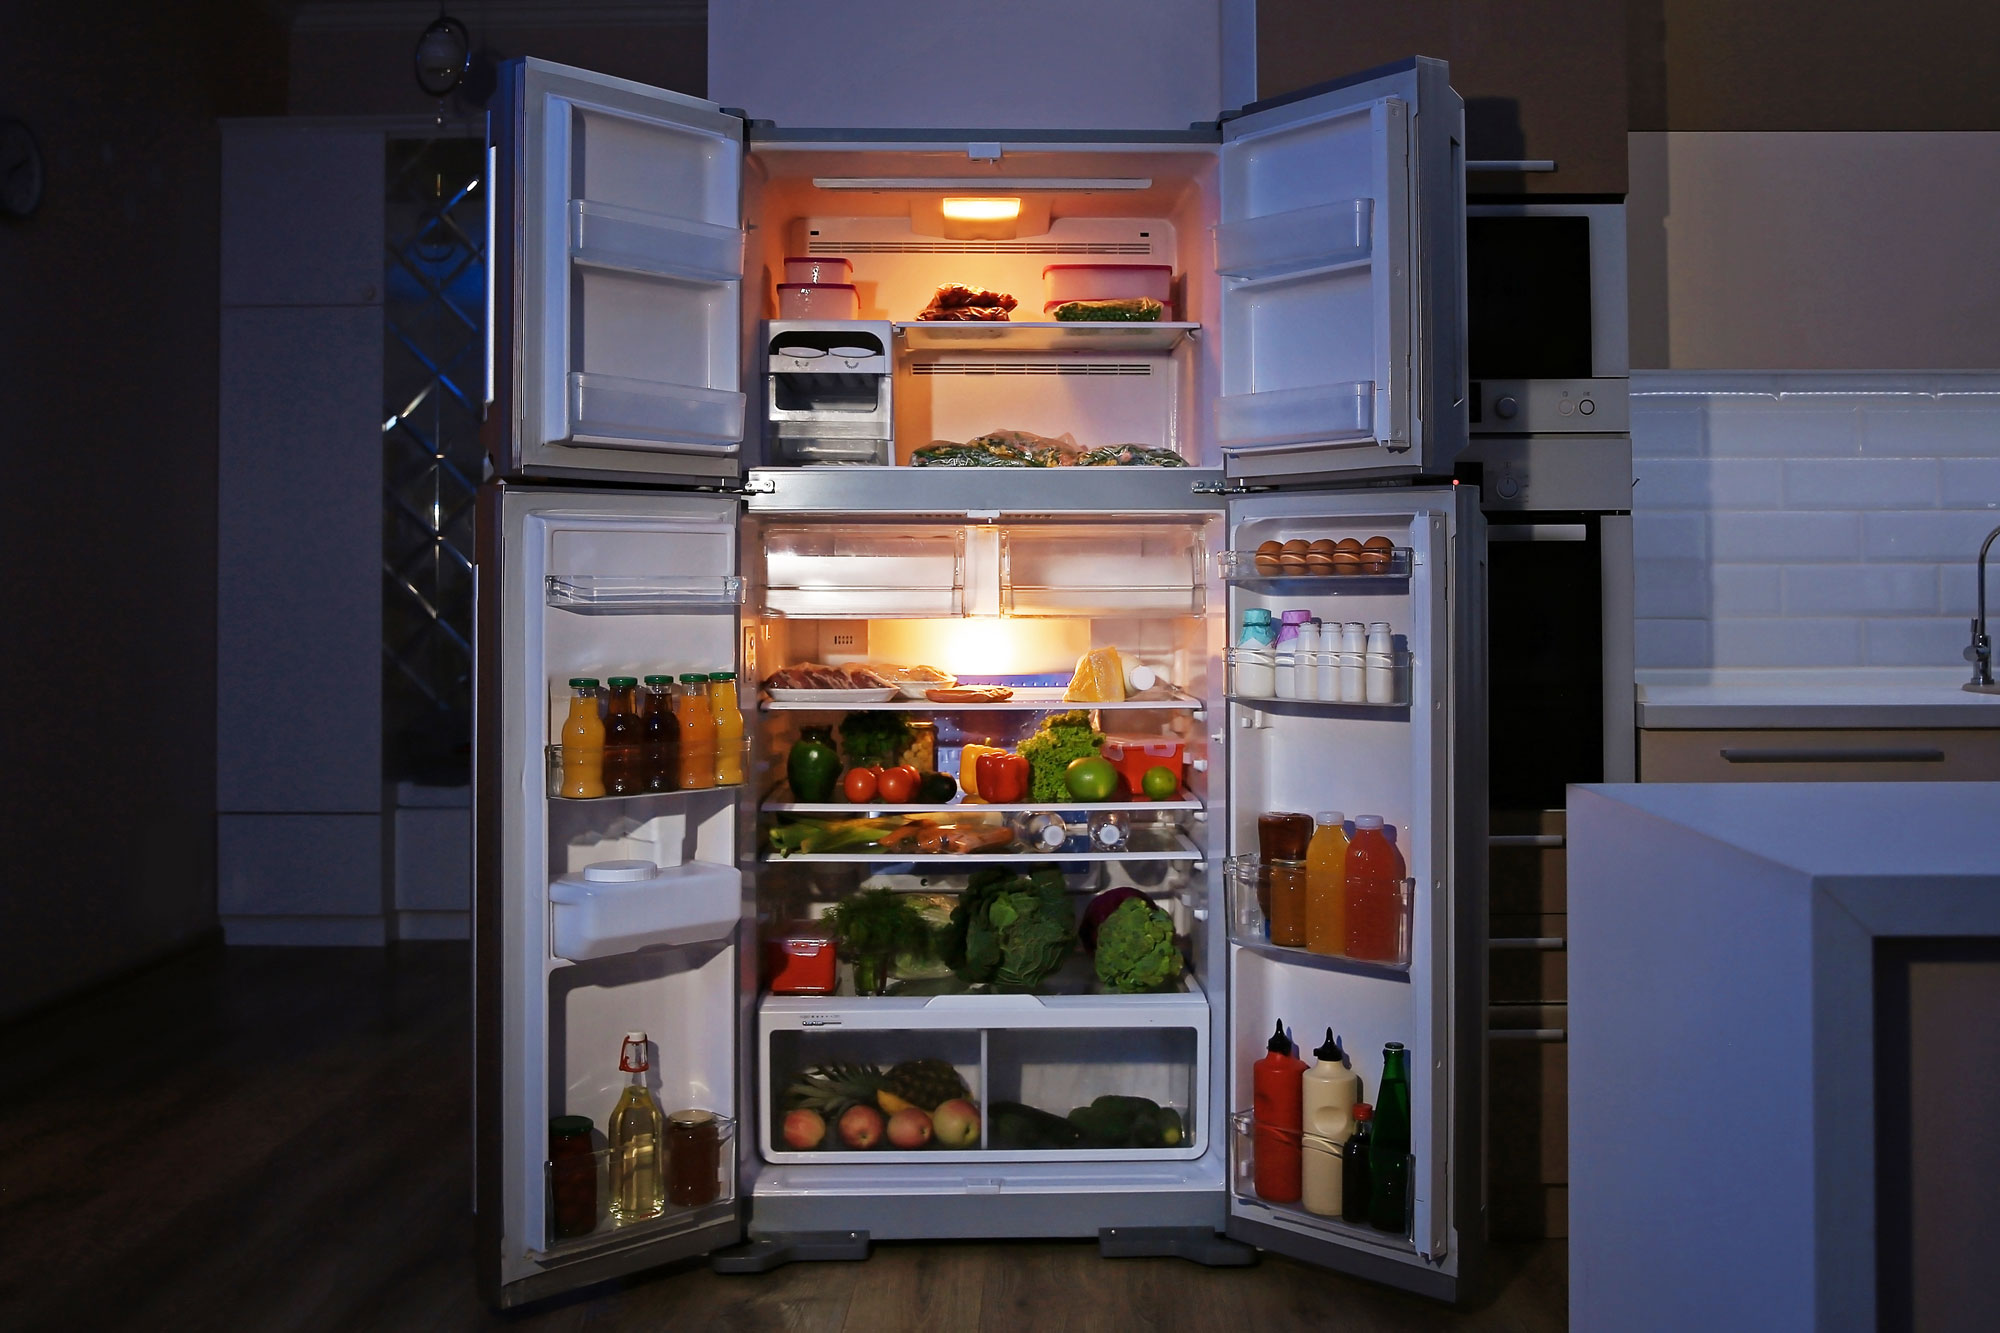 Fully Stocked Refrigerator Open in a dark kitchen